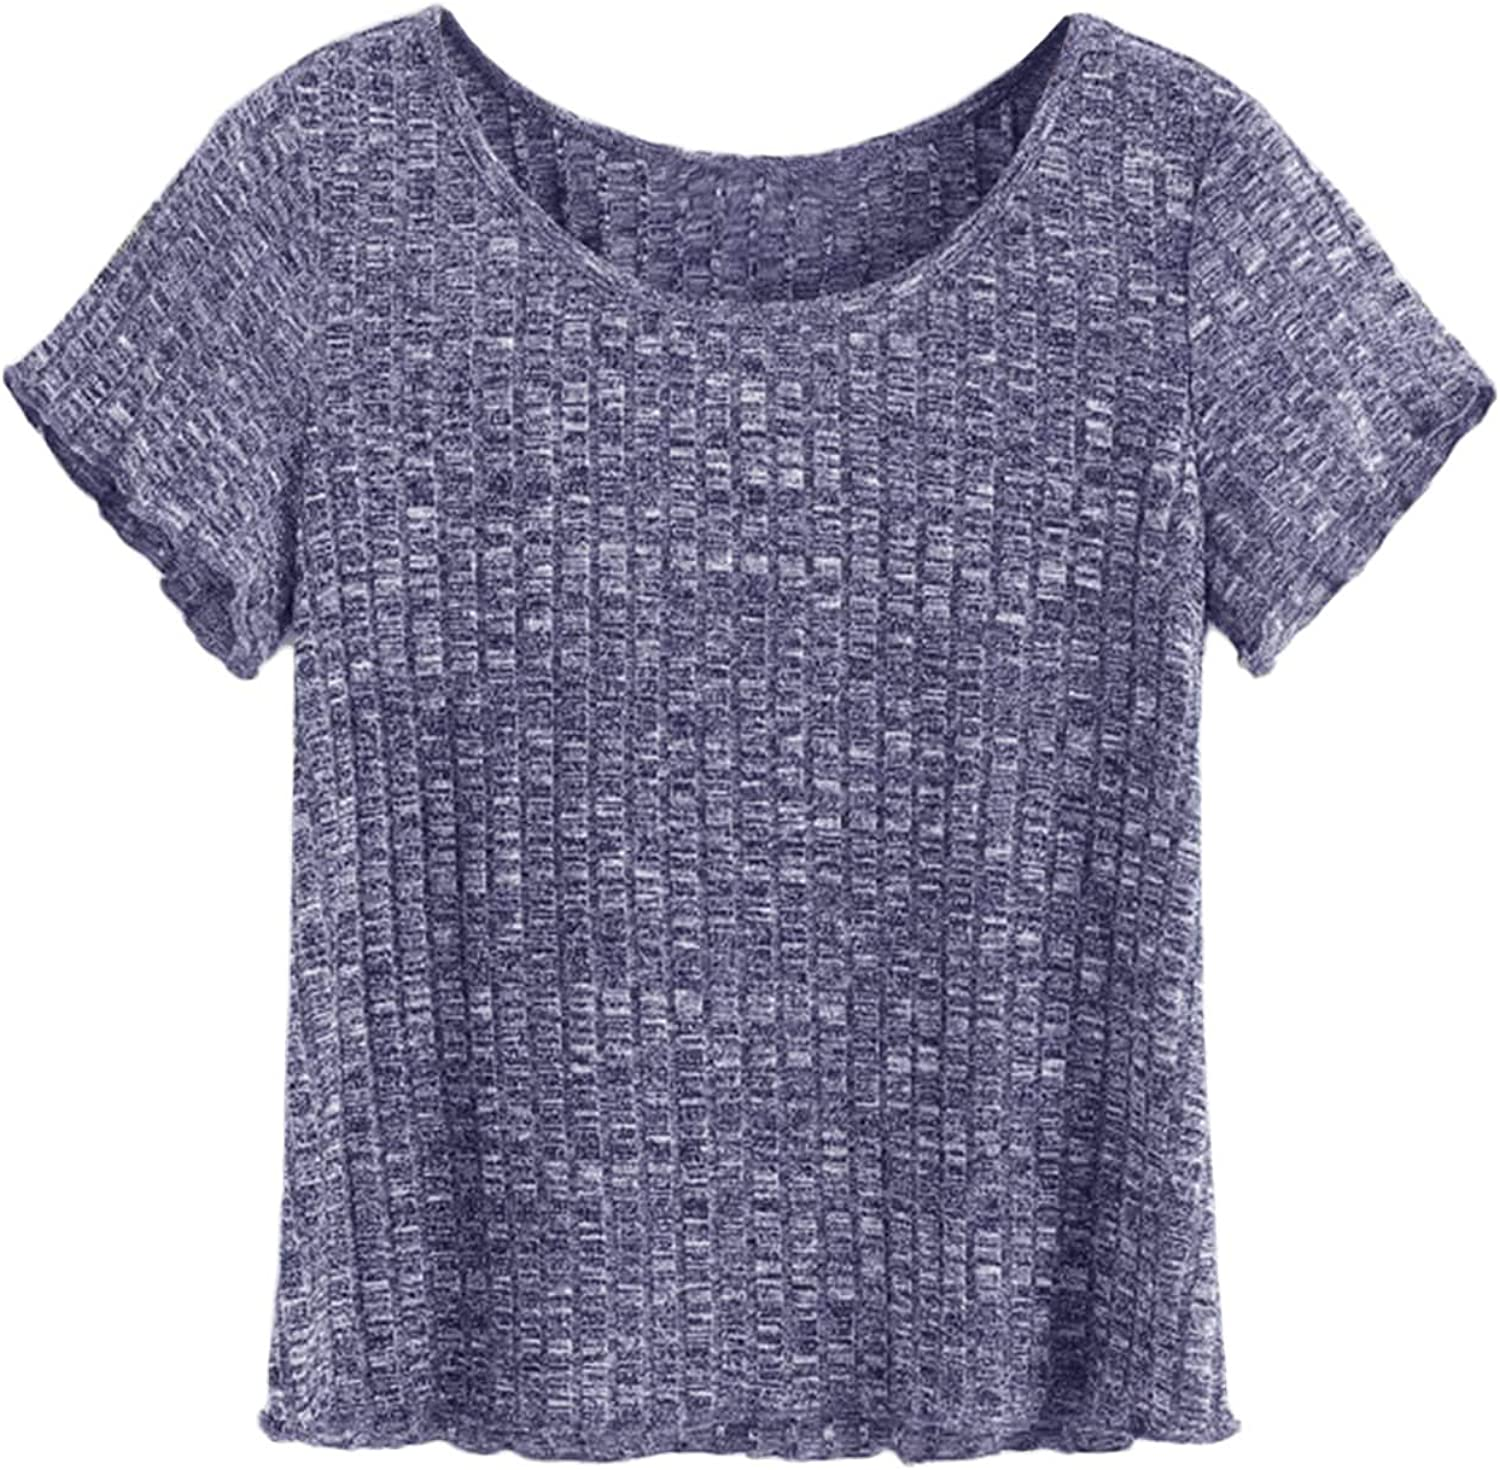 SheIn Women's Casual Basic Crew Neck Short Sleeve Ribbed Knit Tee